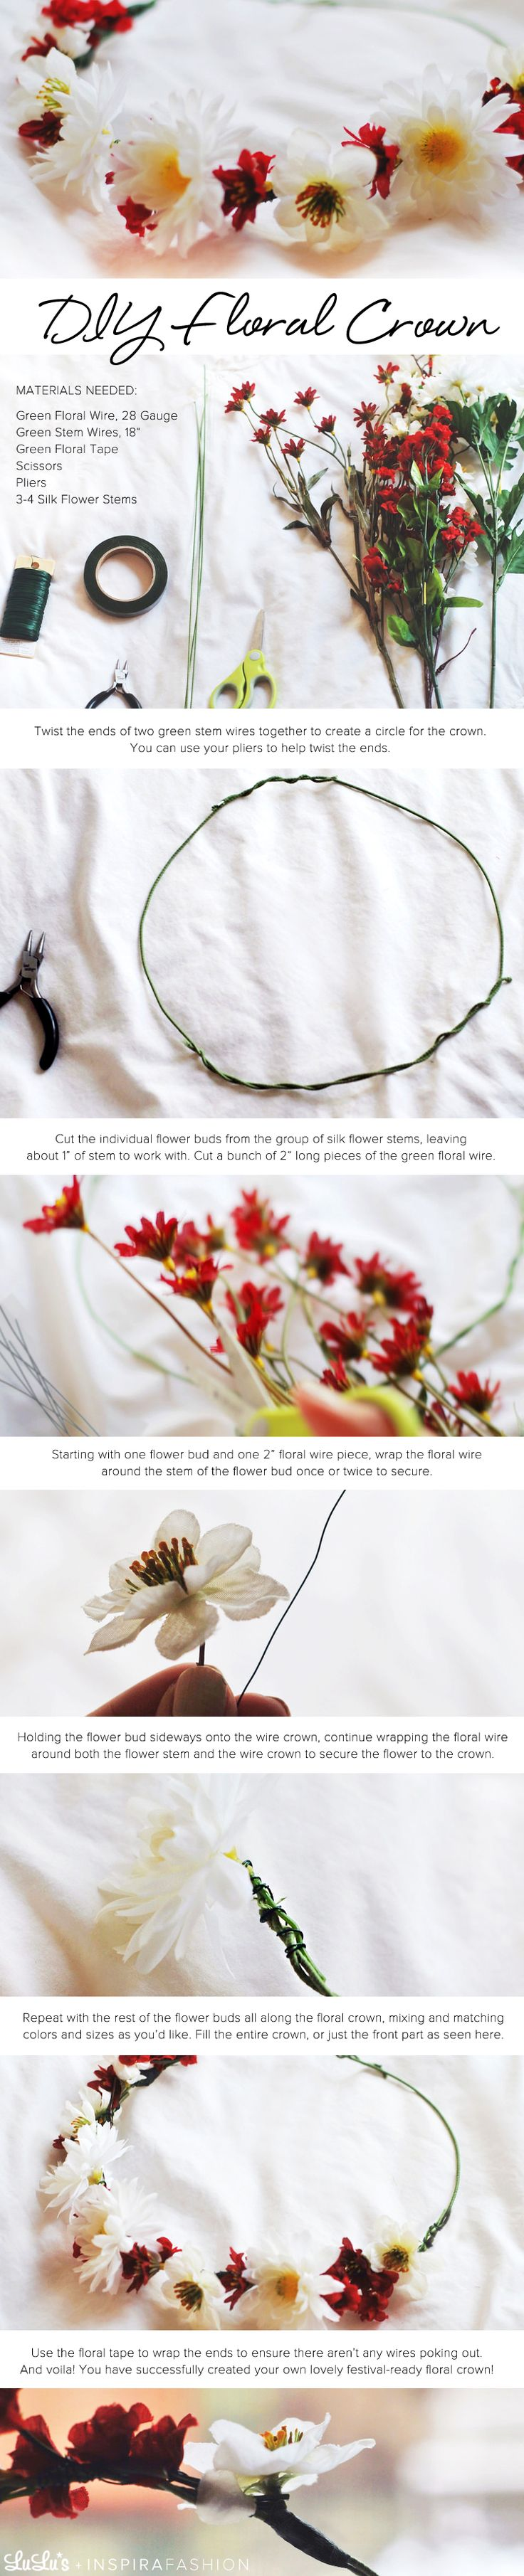 Diy flower crown with kathleen of inspirafashion flower crown diy flower crown tutorial festival diy holly wright theresa riner can we izmirmasajfo Image collections